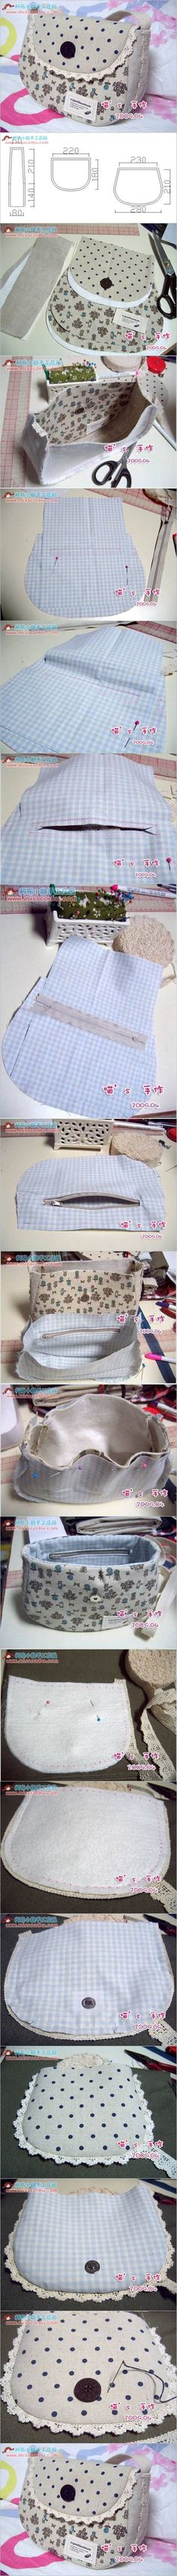 How to Sew a Simple Summer Handbag #craft #sewing #handbag